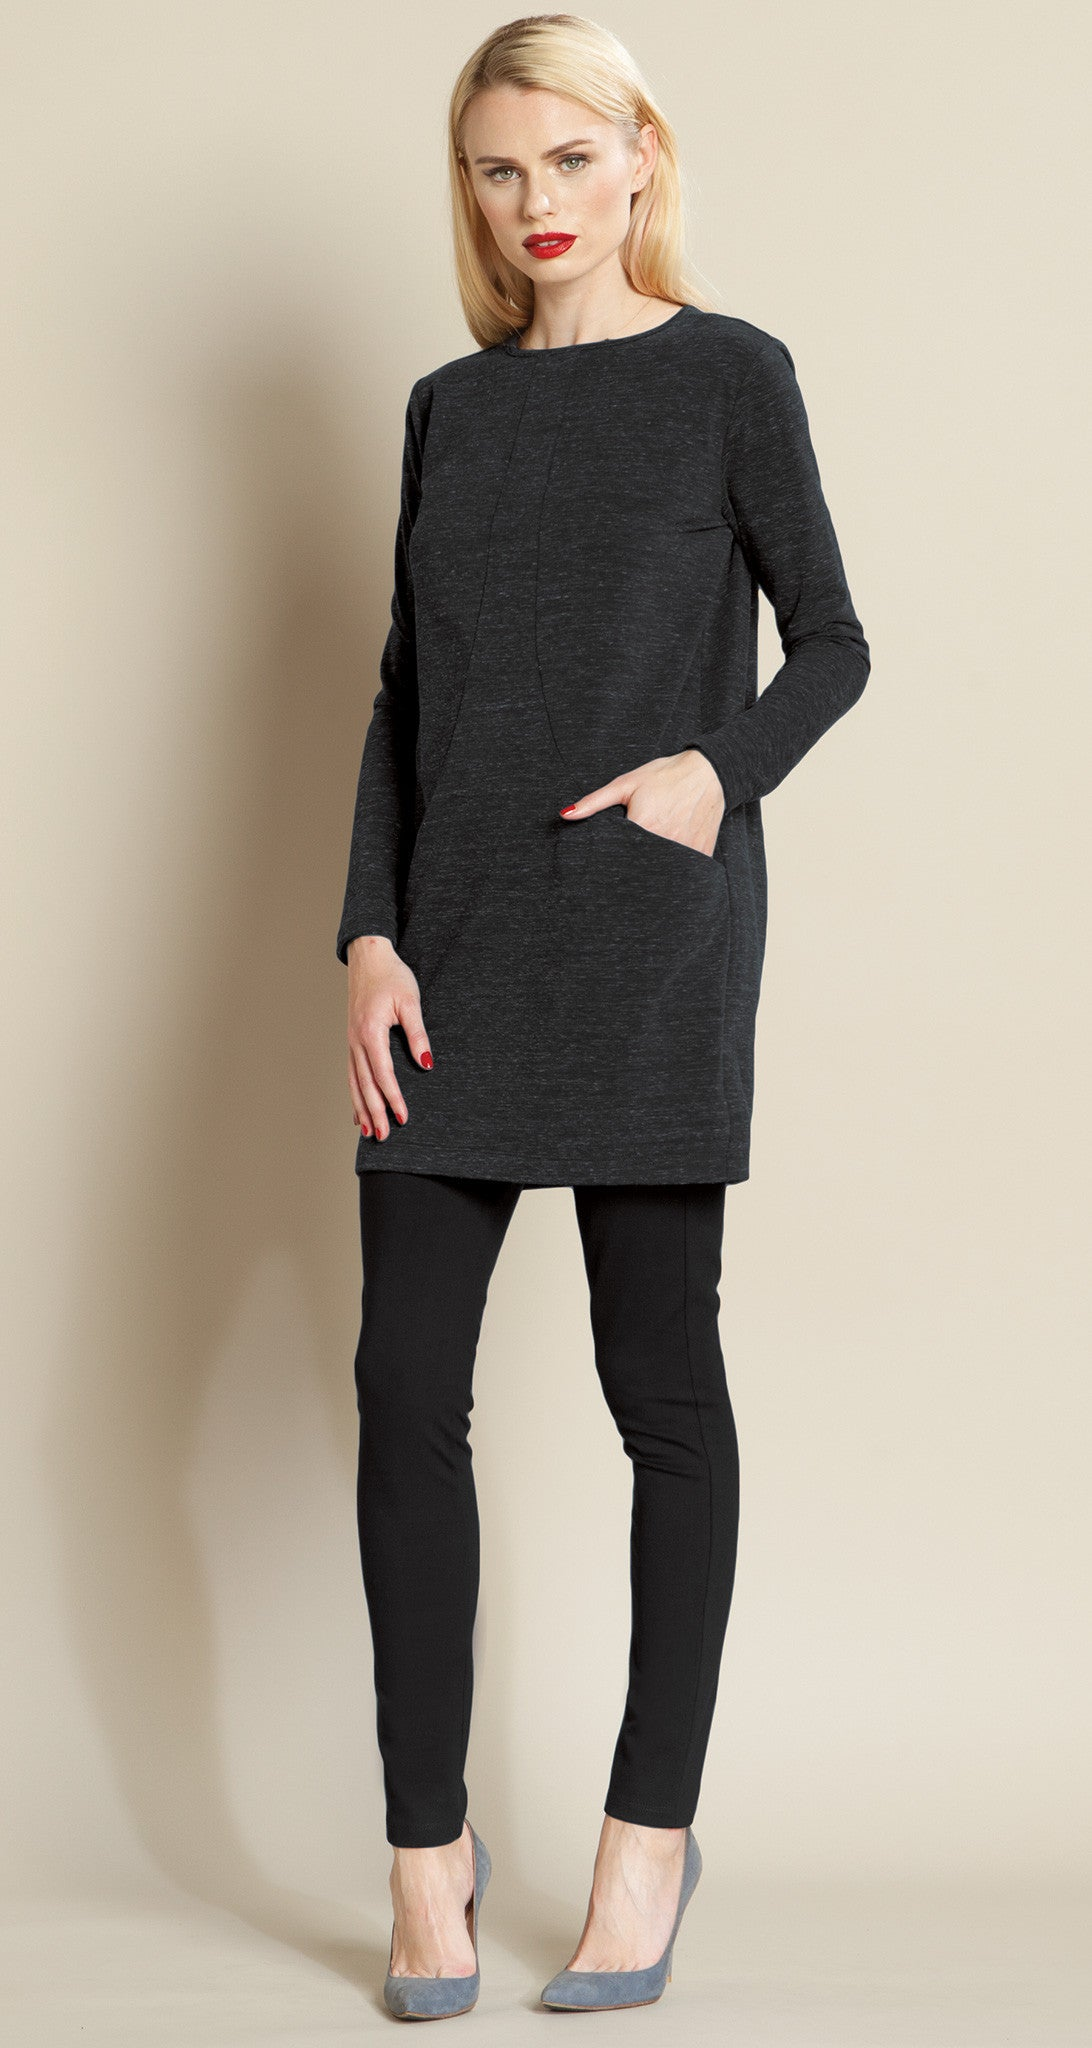 Heathered Pima Pocket Sweater Tunic - Clara Sunwoo